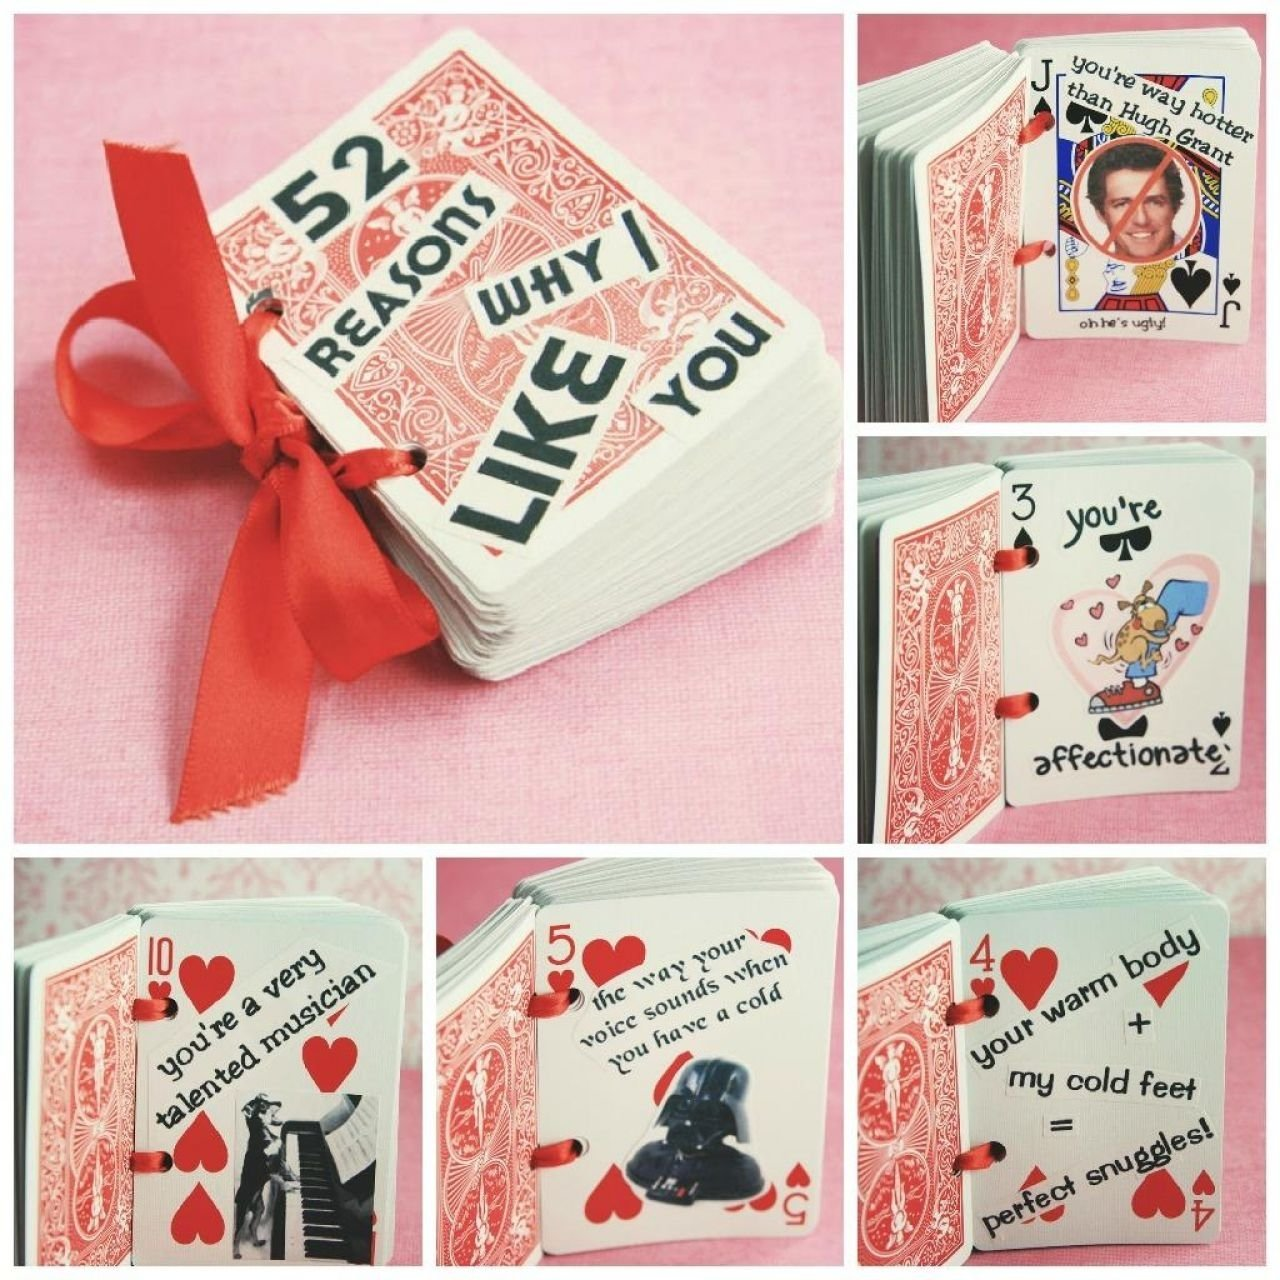 10 Amazing Valentines Gift Ideas For Boyfriend valentines day crafts him lovely valentine gifts your dma homes 15 2020